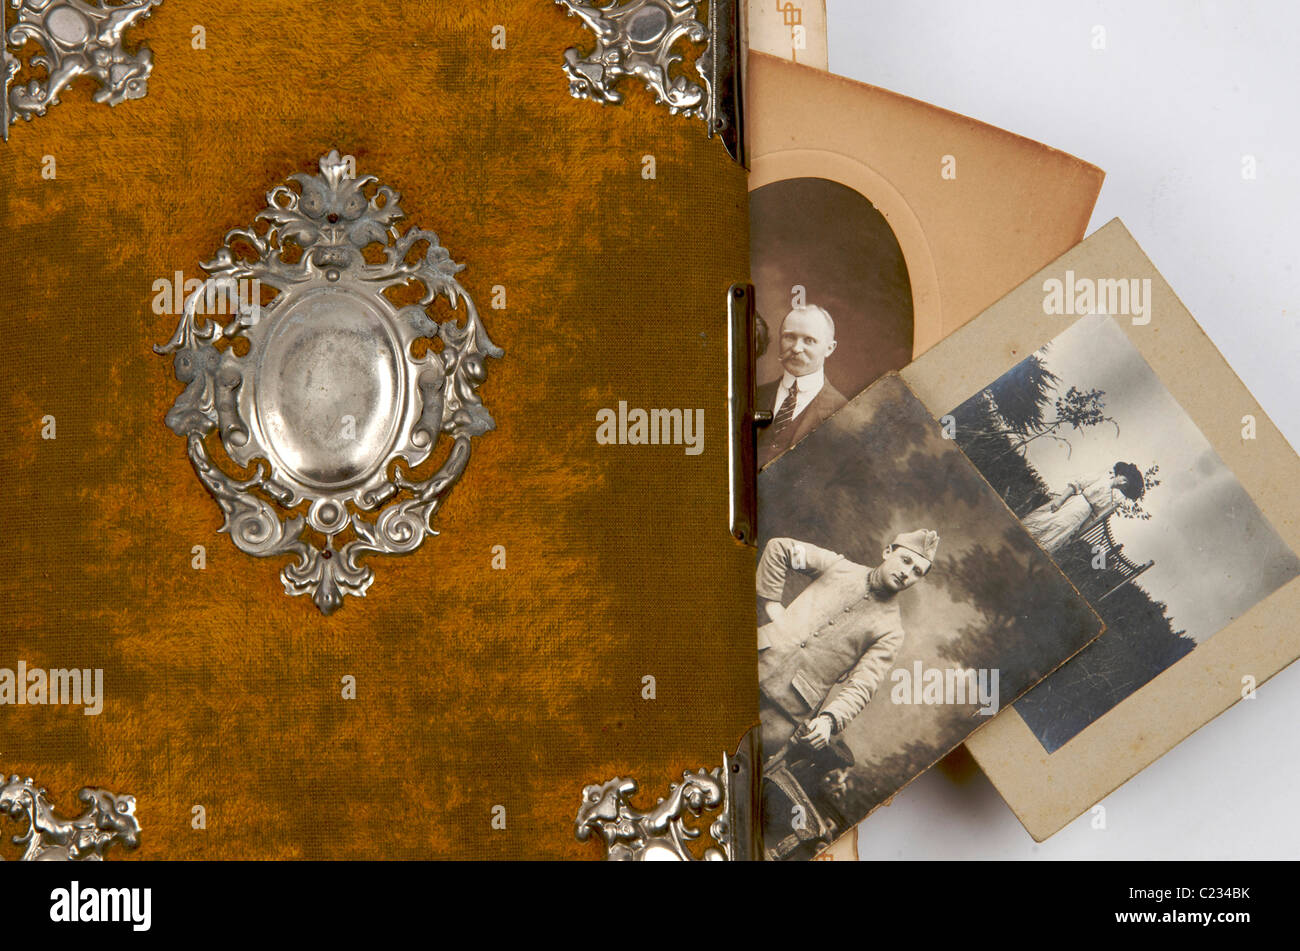 Old vintage album and photographs - Stock Image